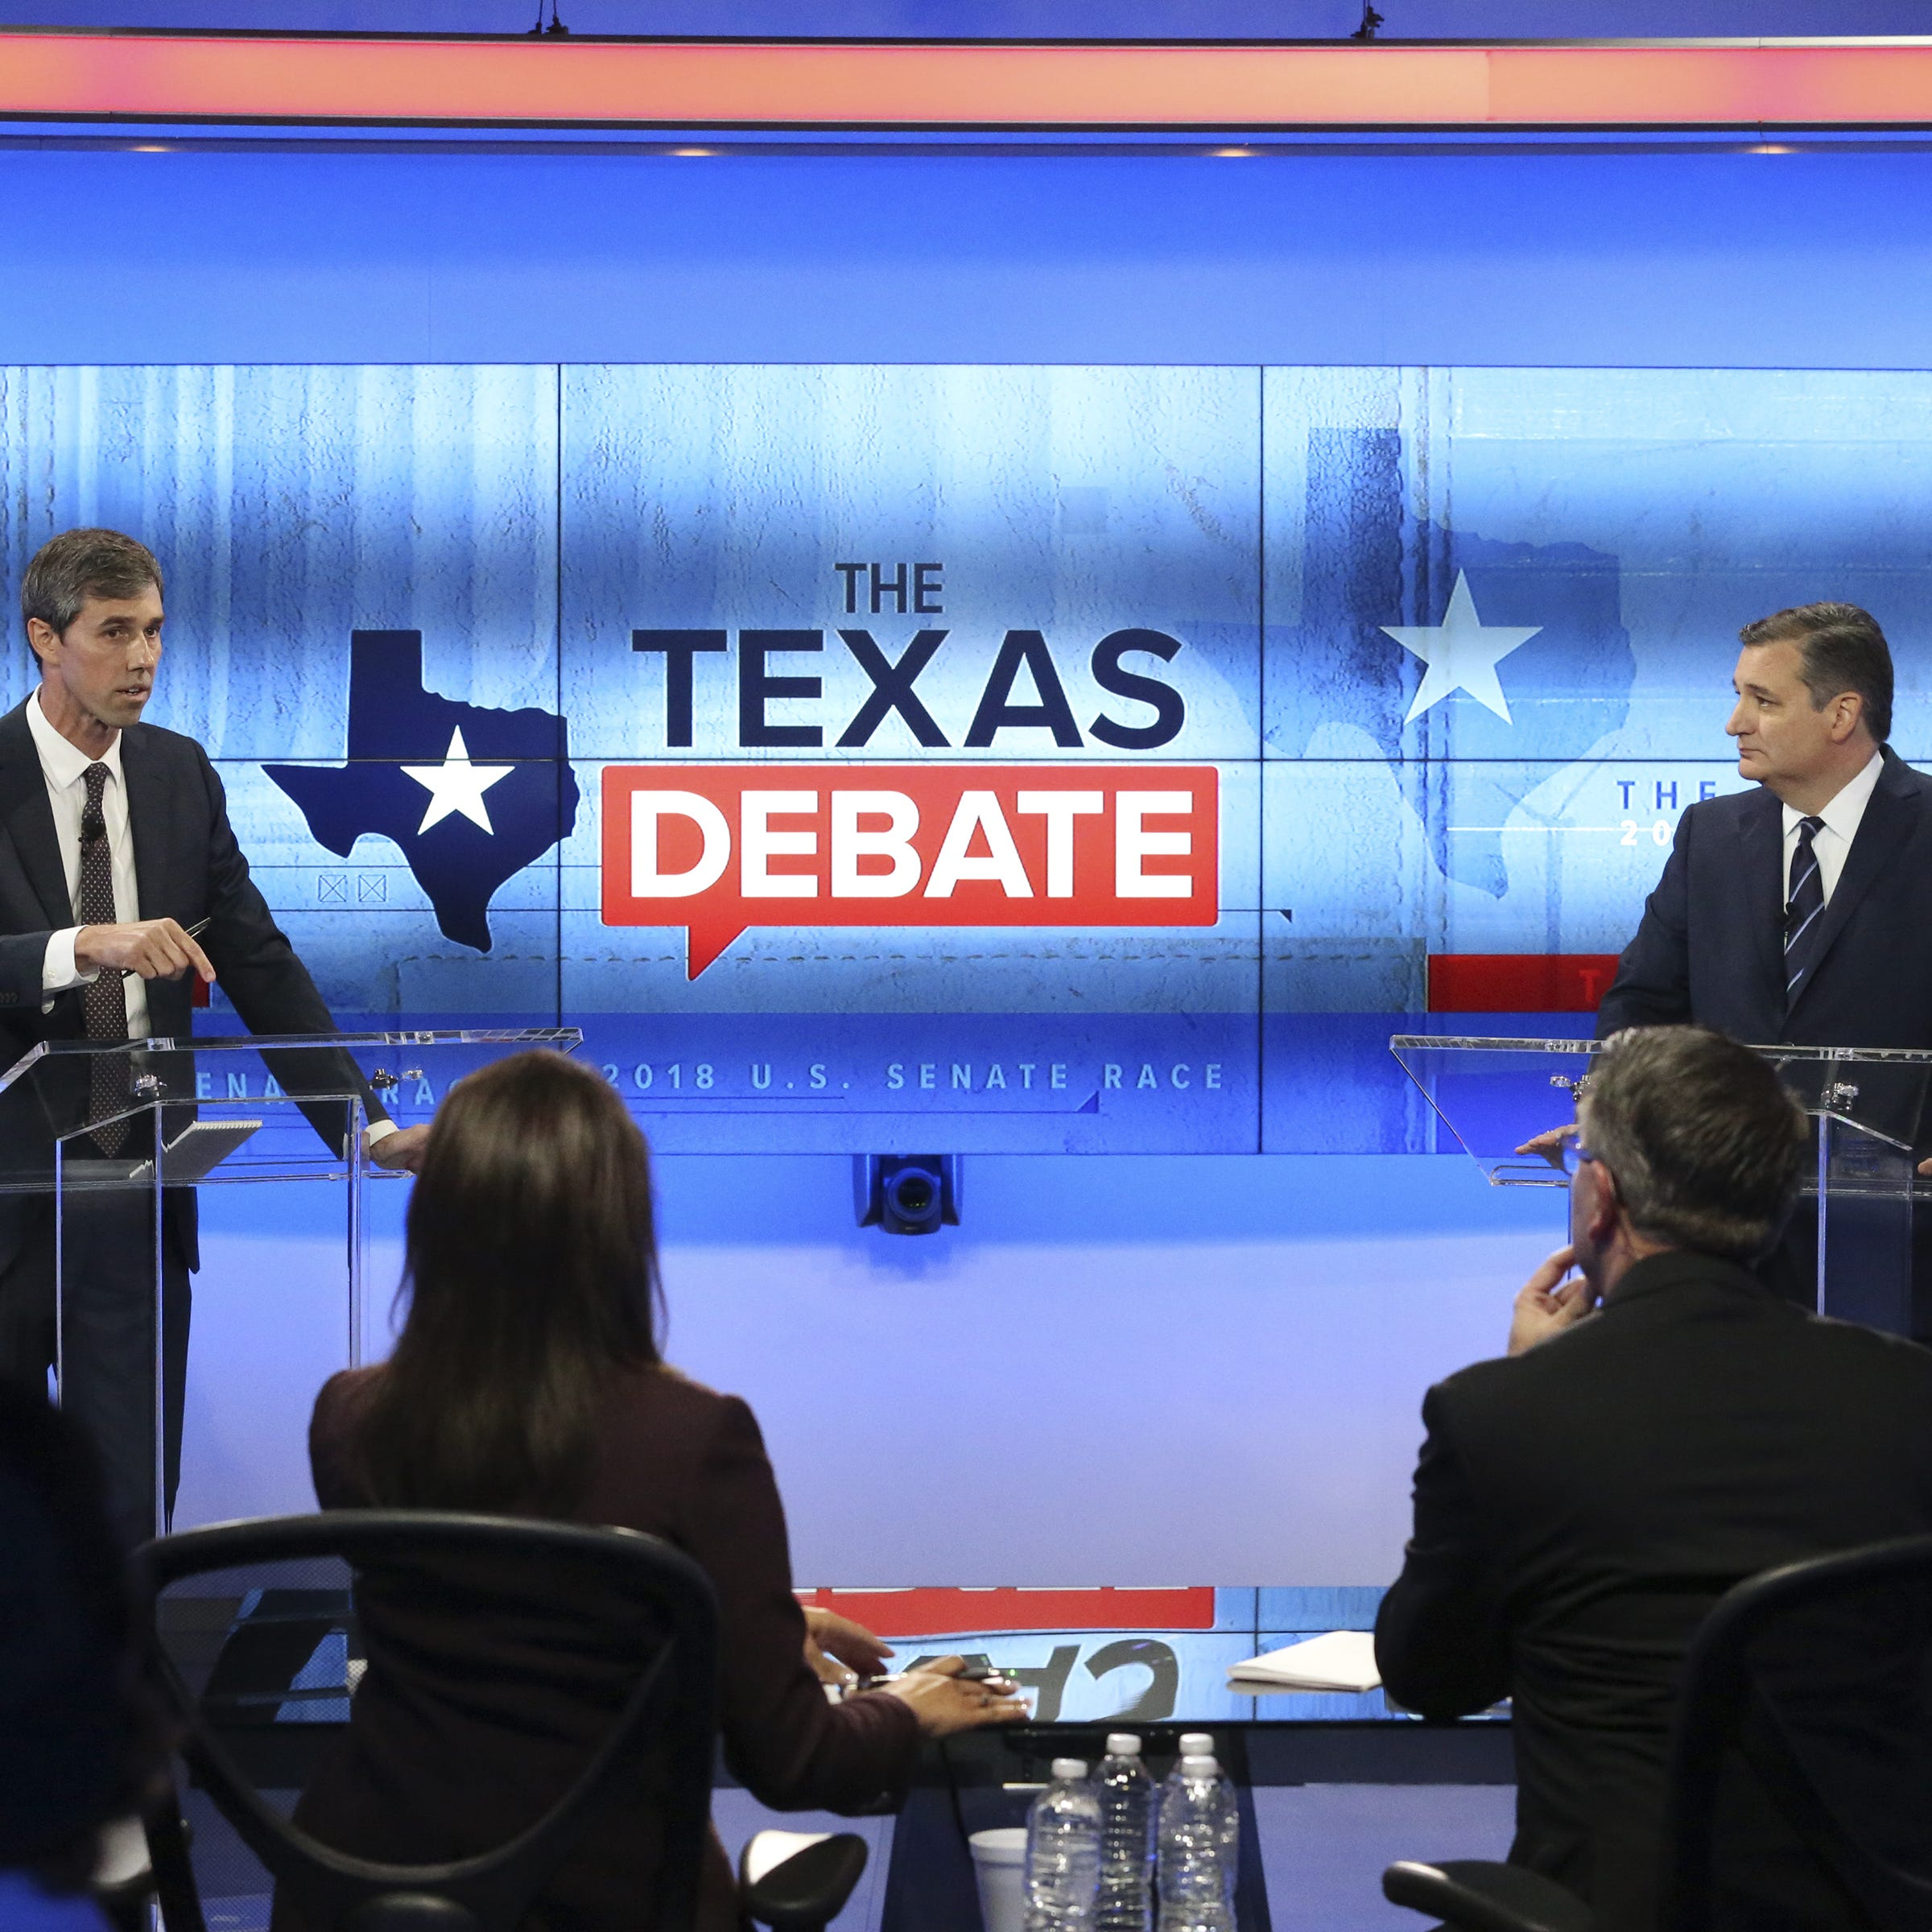 Beto-Cruz debate fact check: Who's winning when it comes to the truth in Texas?